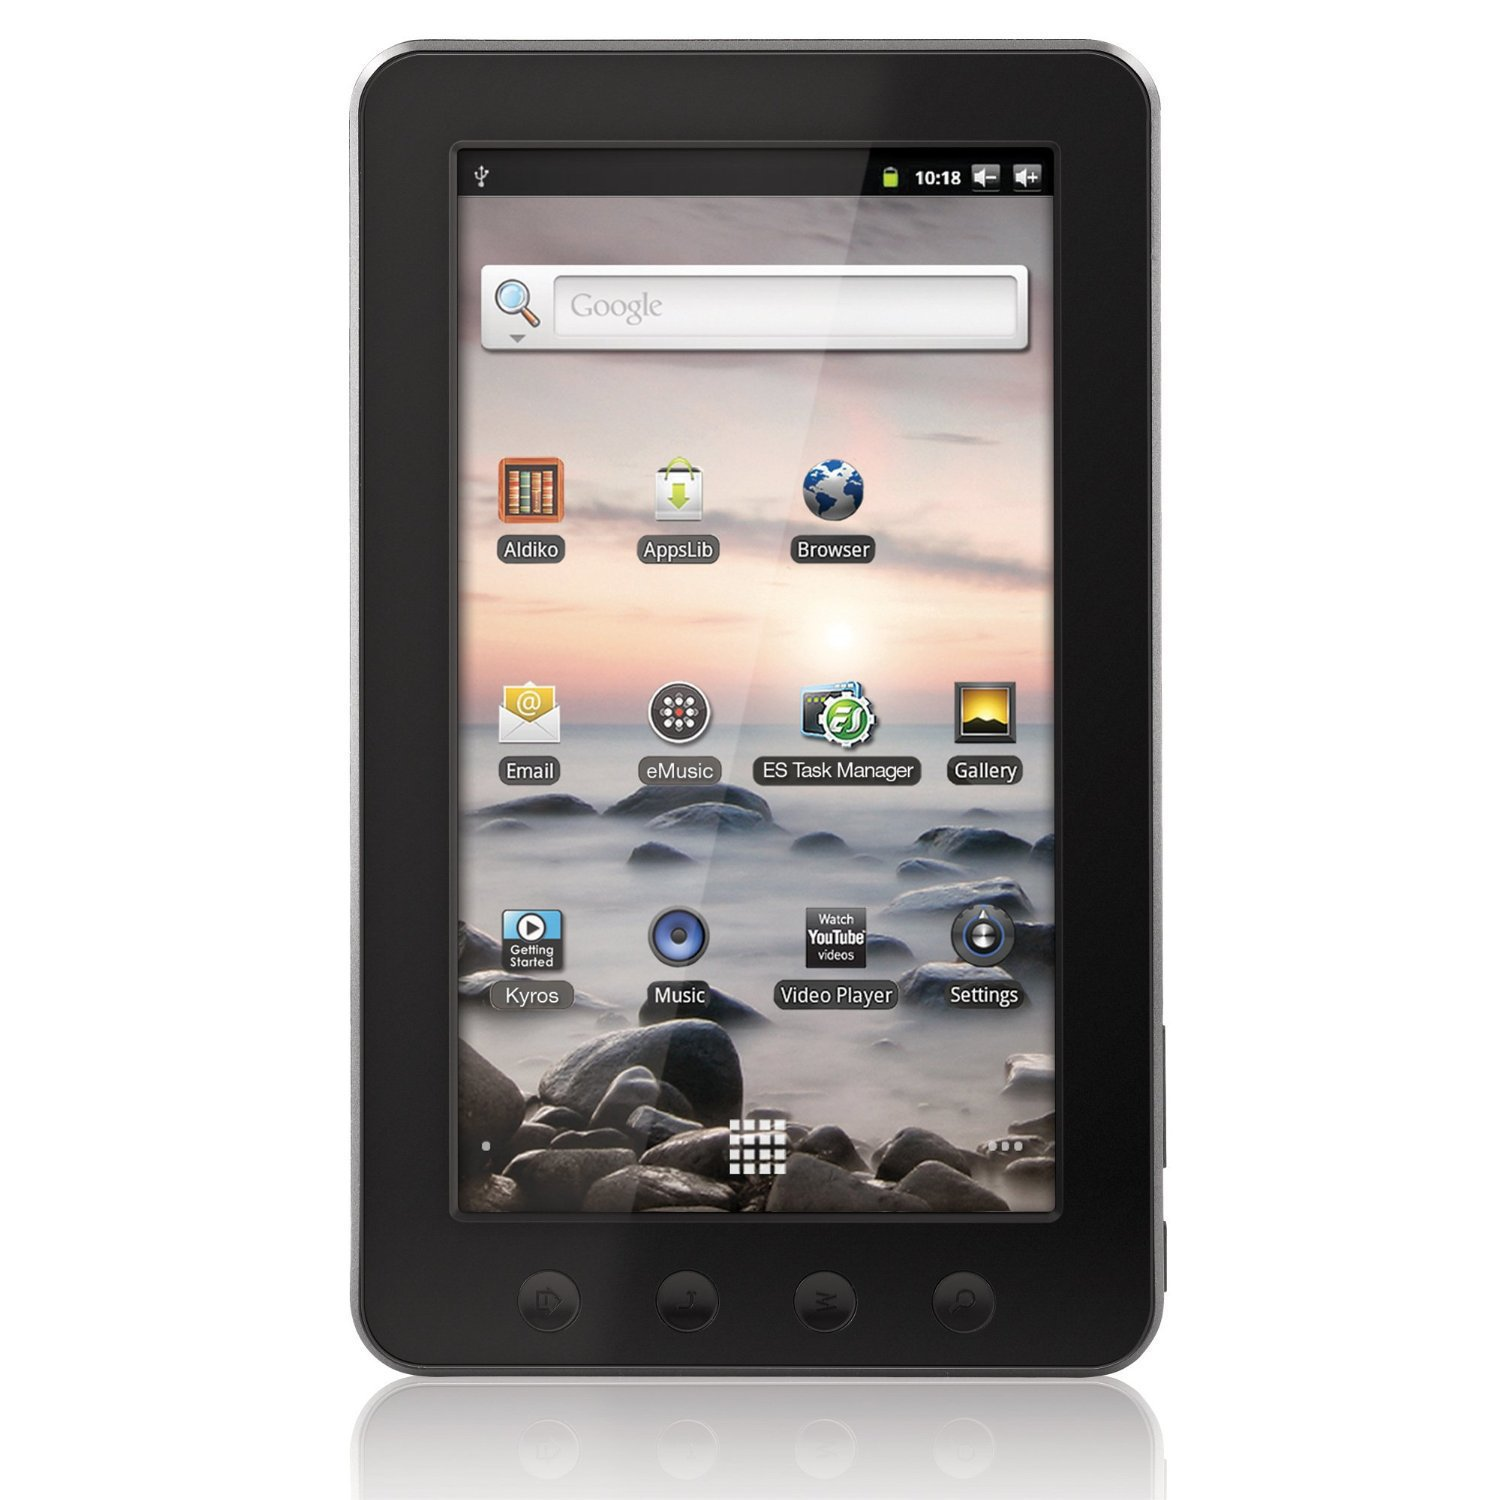 Coby Kyros 7-Inch Android 2.3 4 GB Internet Touchscreen Tablet - MID7012-4G (Black)